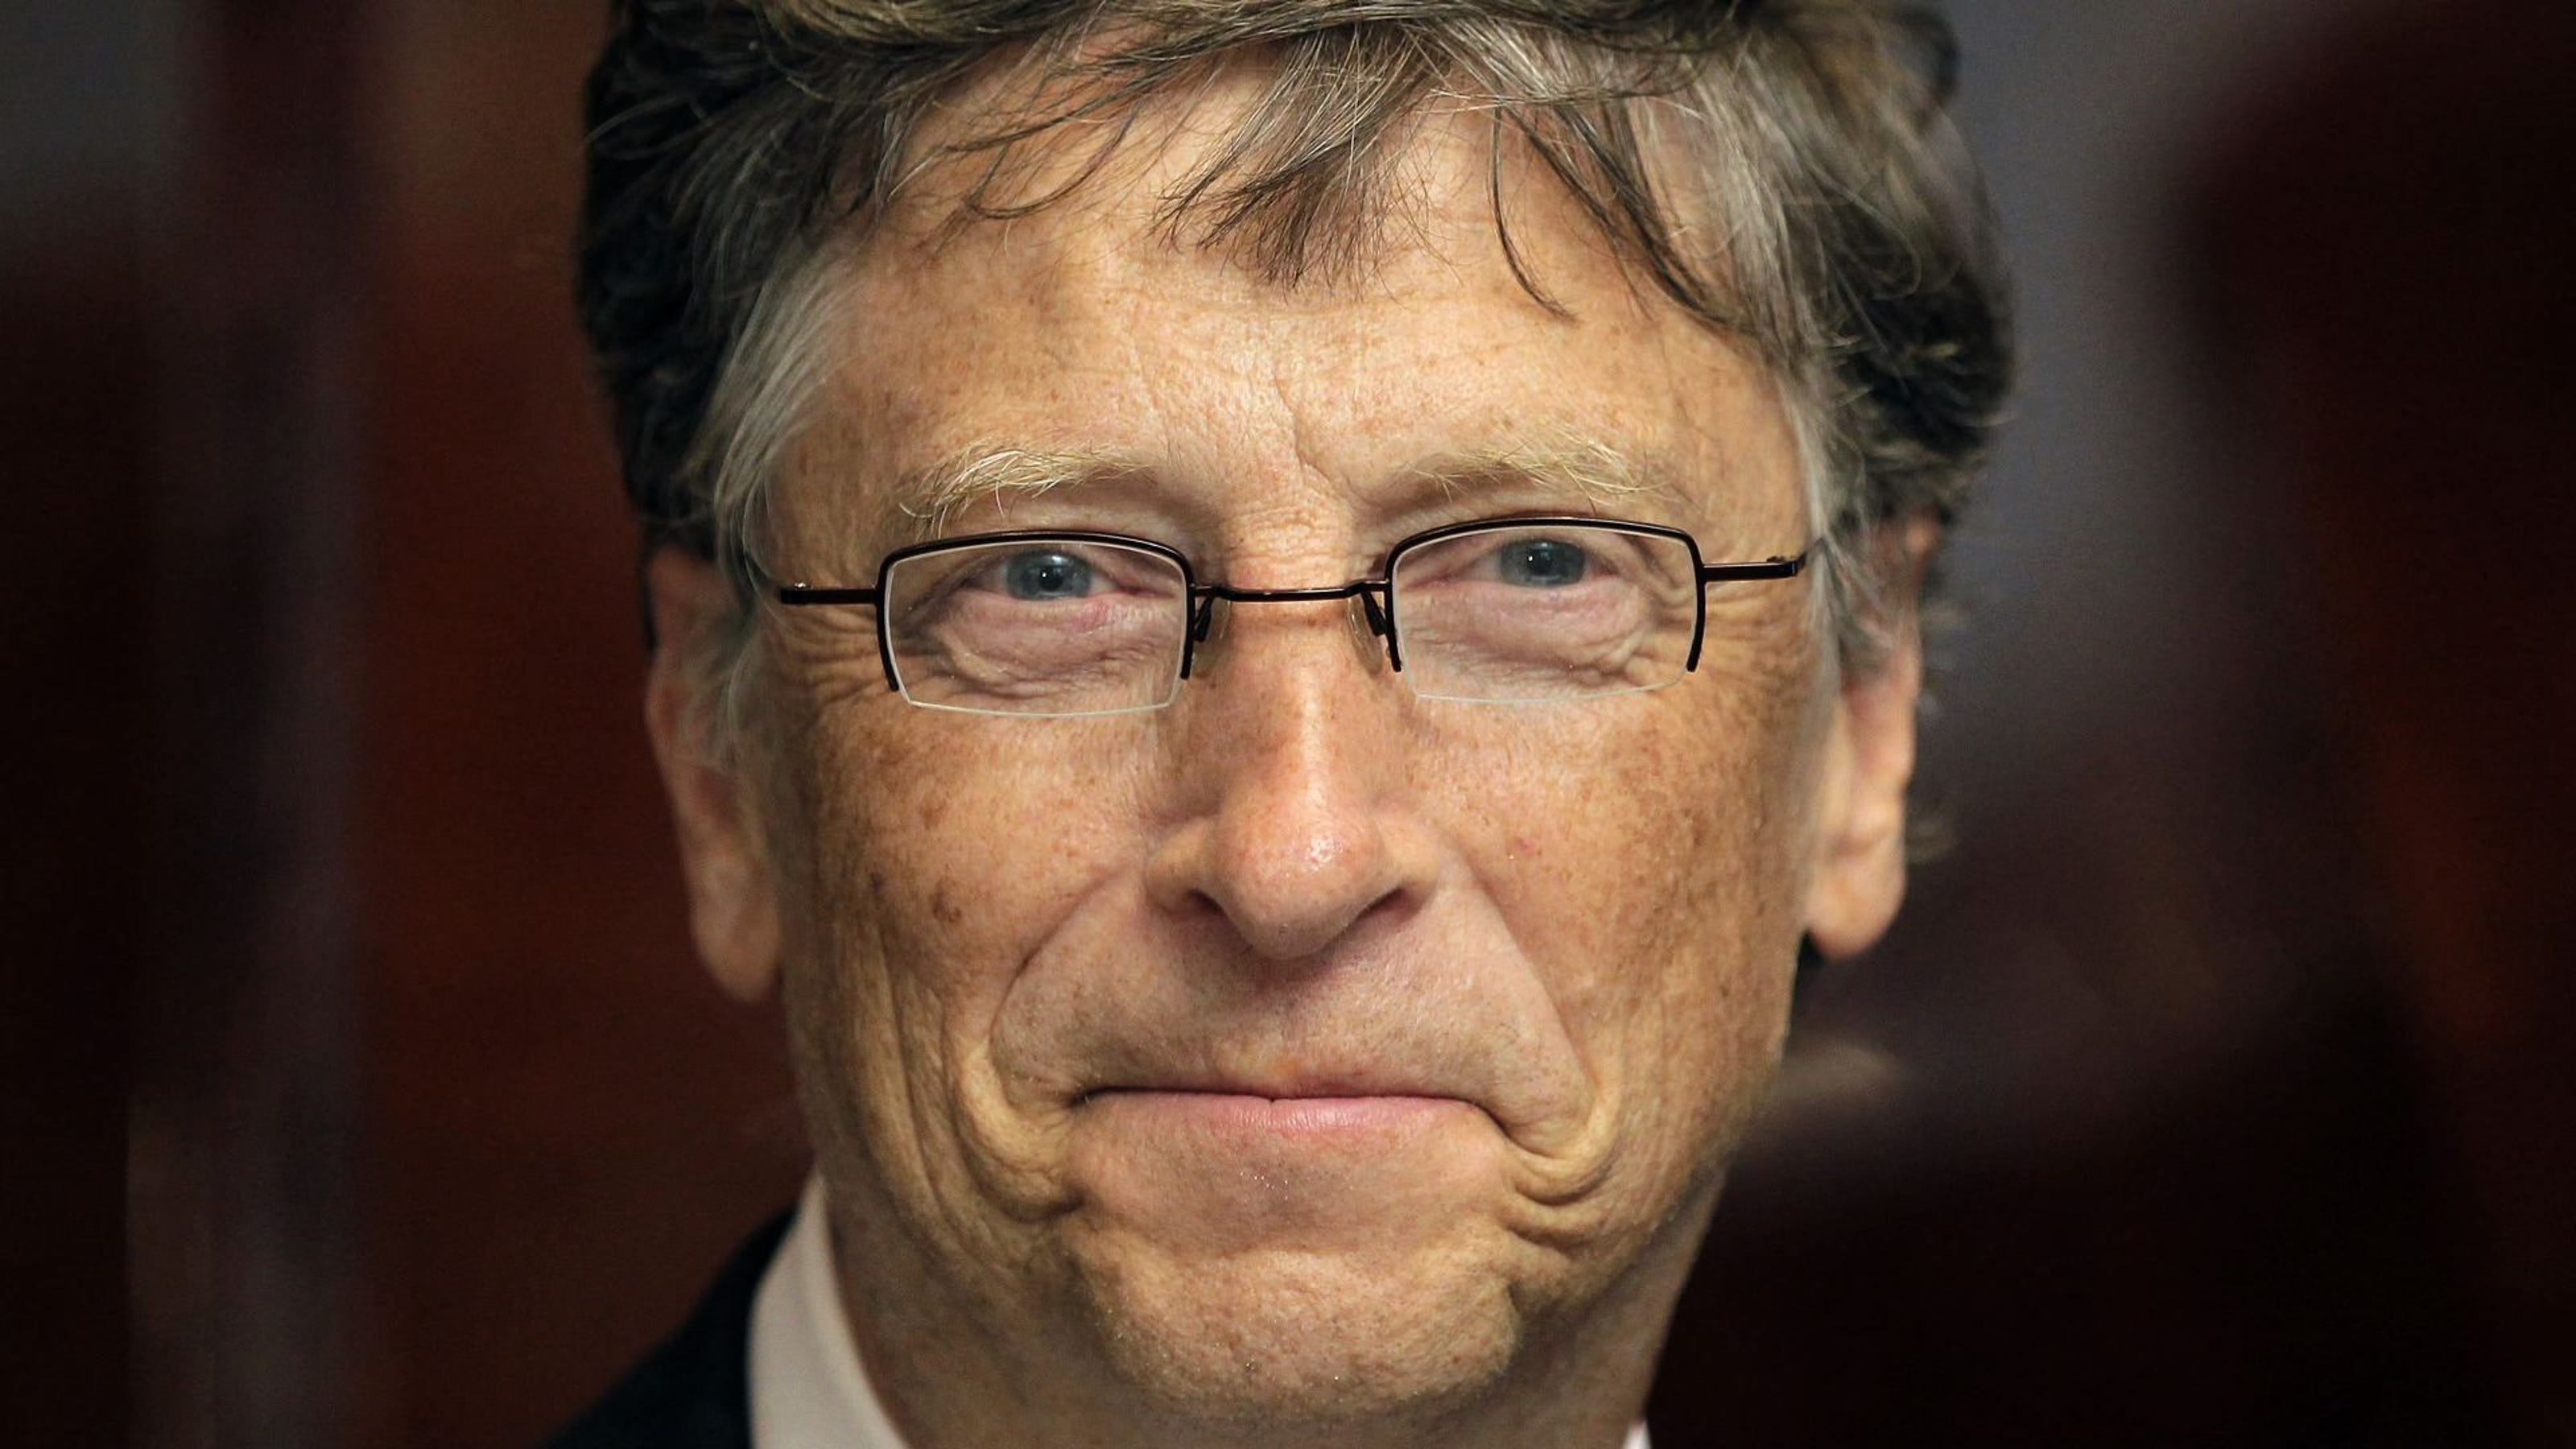 Who s the richest man in the world